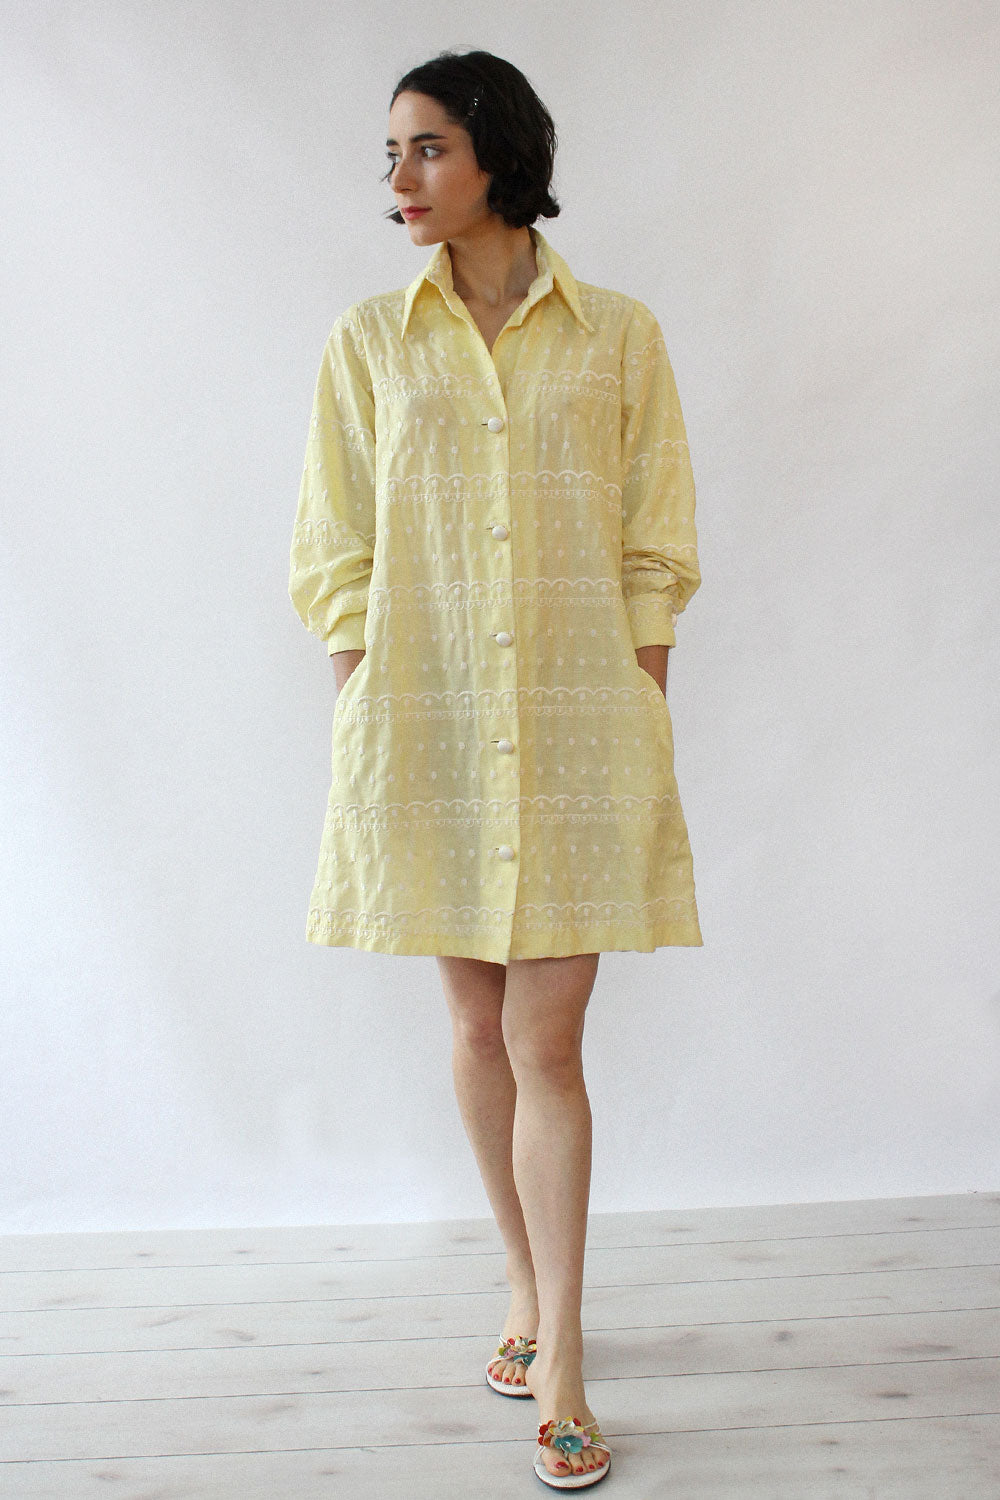 Buttercup Embroidered Jacket/Dress XS-M